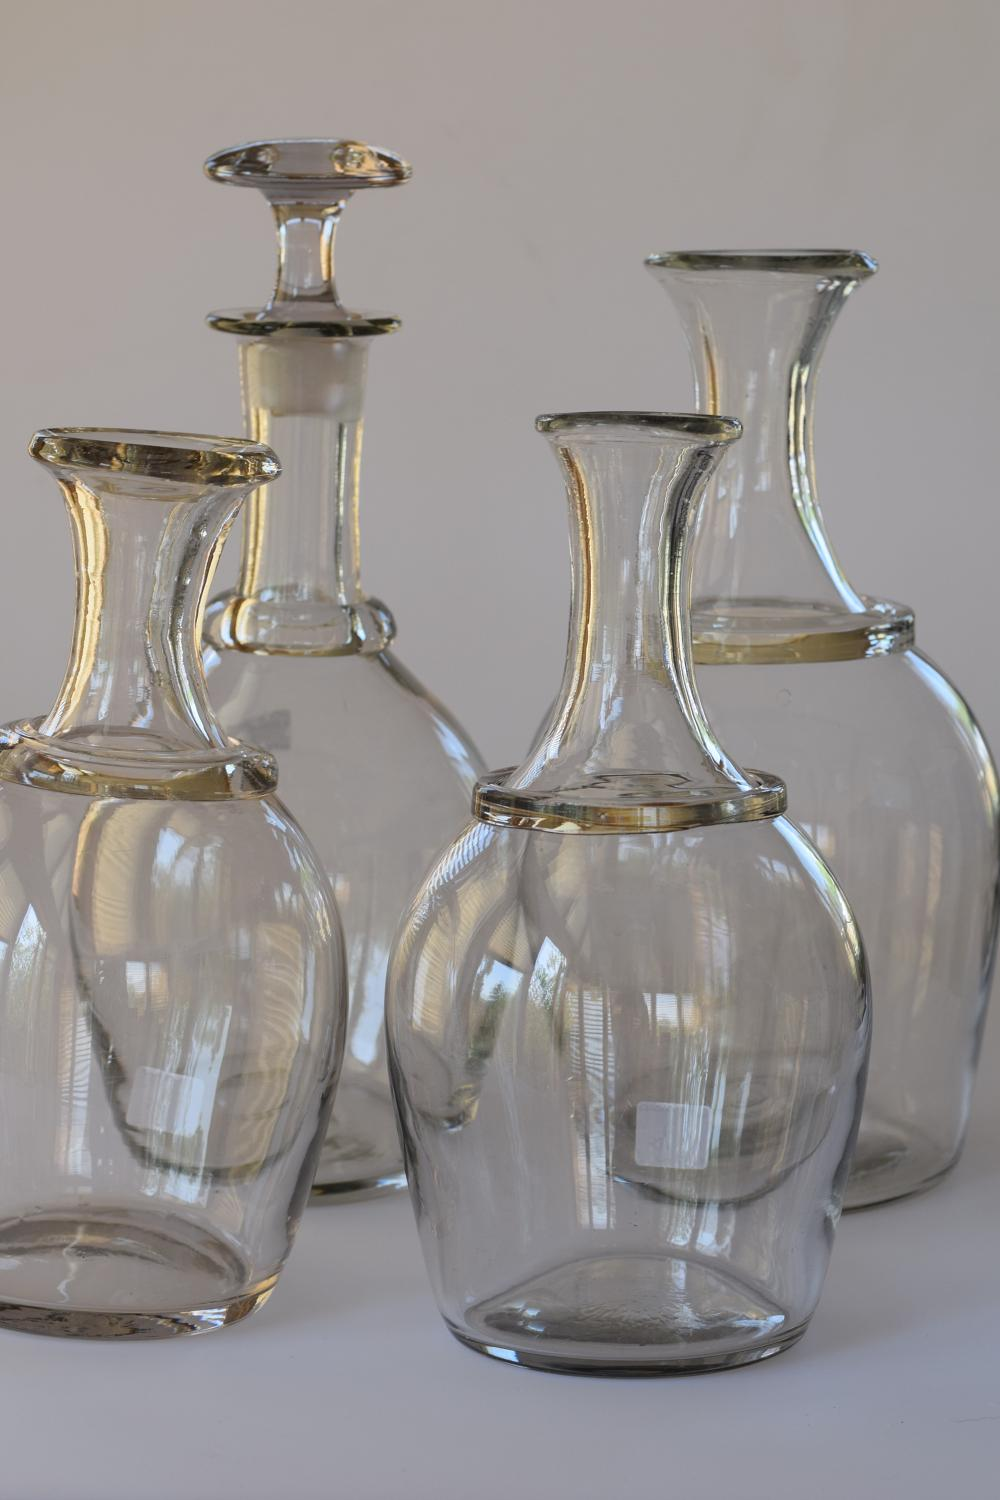 French cider decanters.